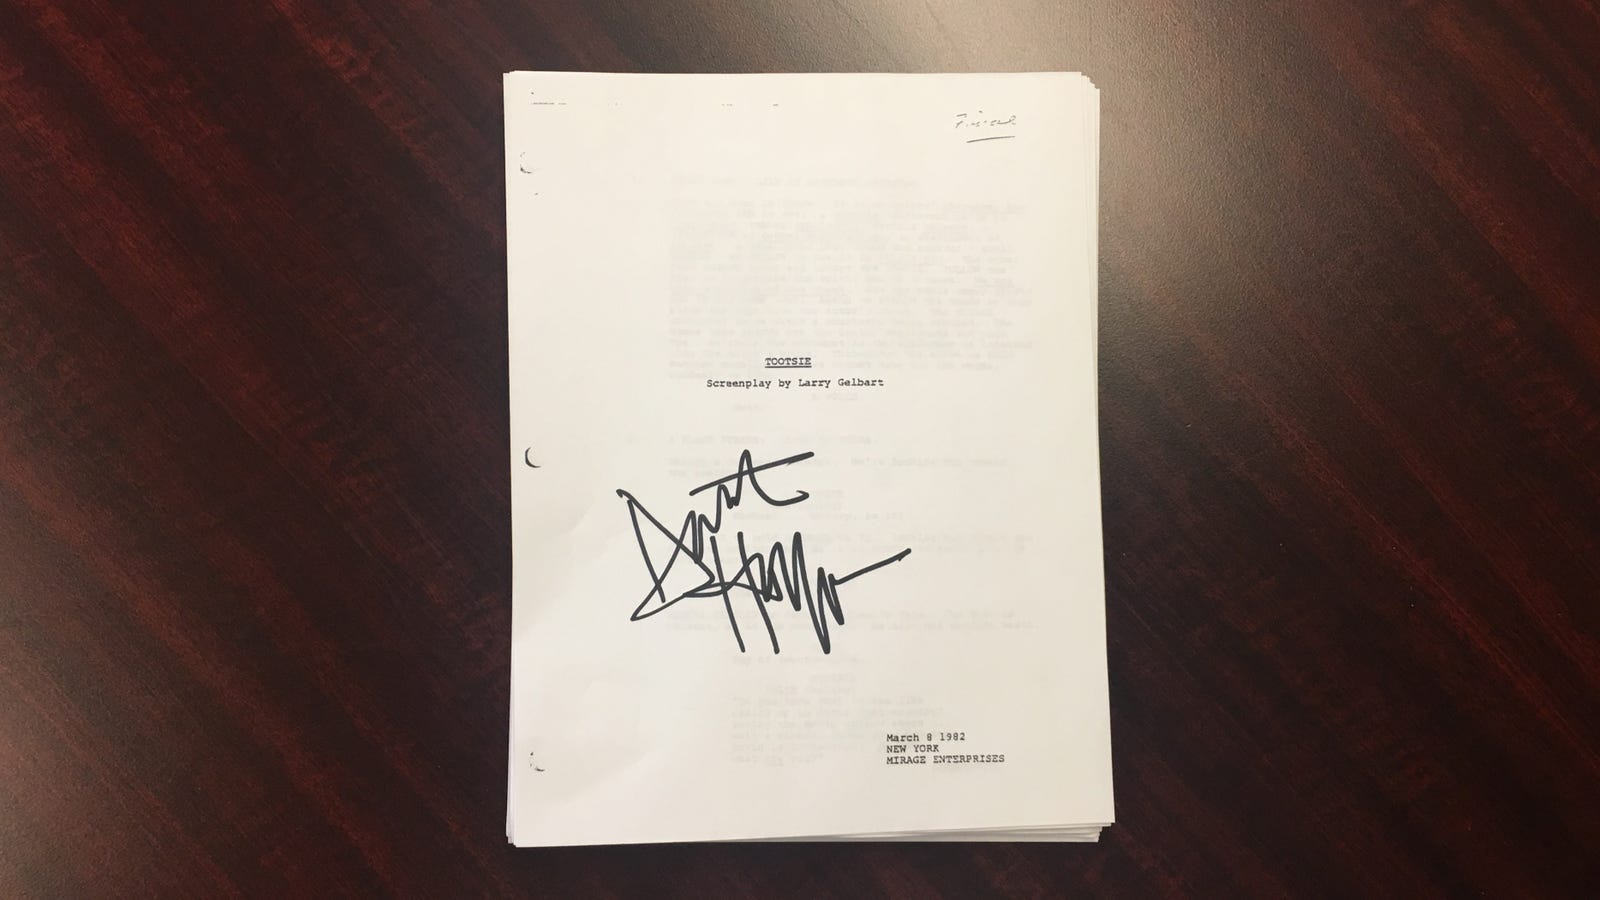 Original Script Signed By Dustin Hoffman (Verified): If it had also included autographs from Sydney Pollack or Jessica Lange, this would've been a steal at $300. But with Hoffman alone, there are better deals out there.